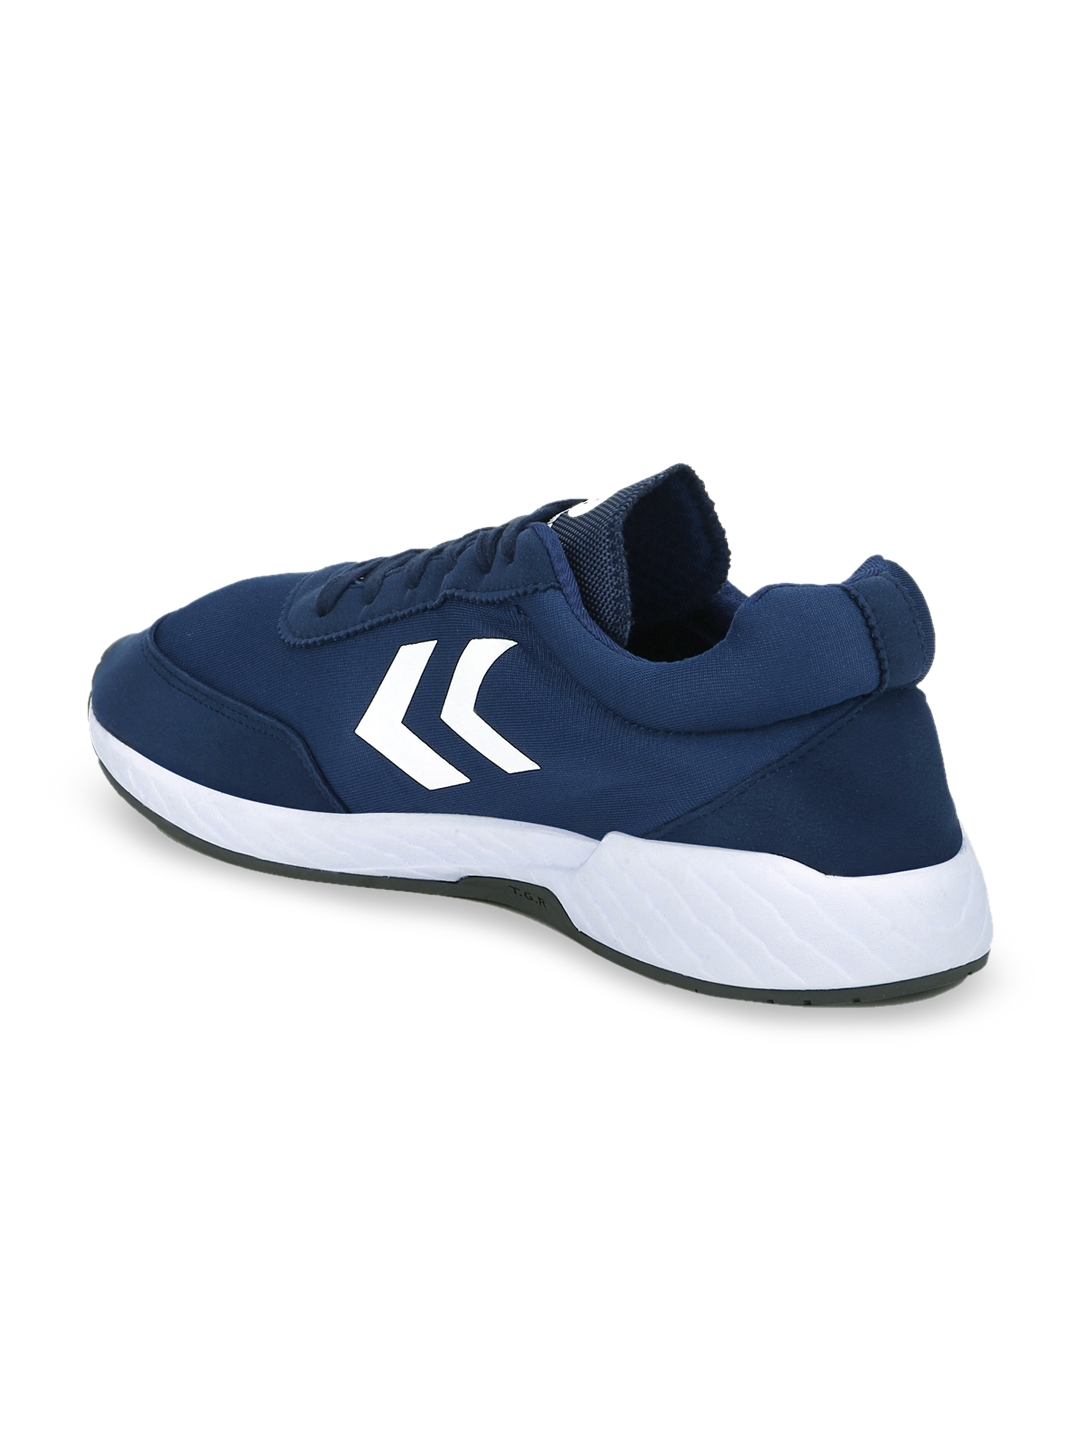 san francisco 7cbe3 6fa28 Buy Hummel Unisex Blue Legend Retro Sneakers - Casual Shoes ...